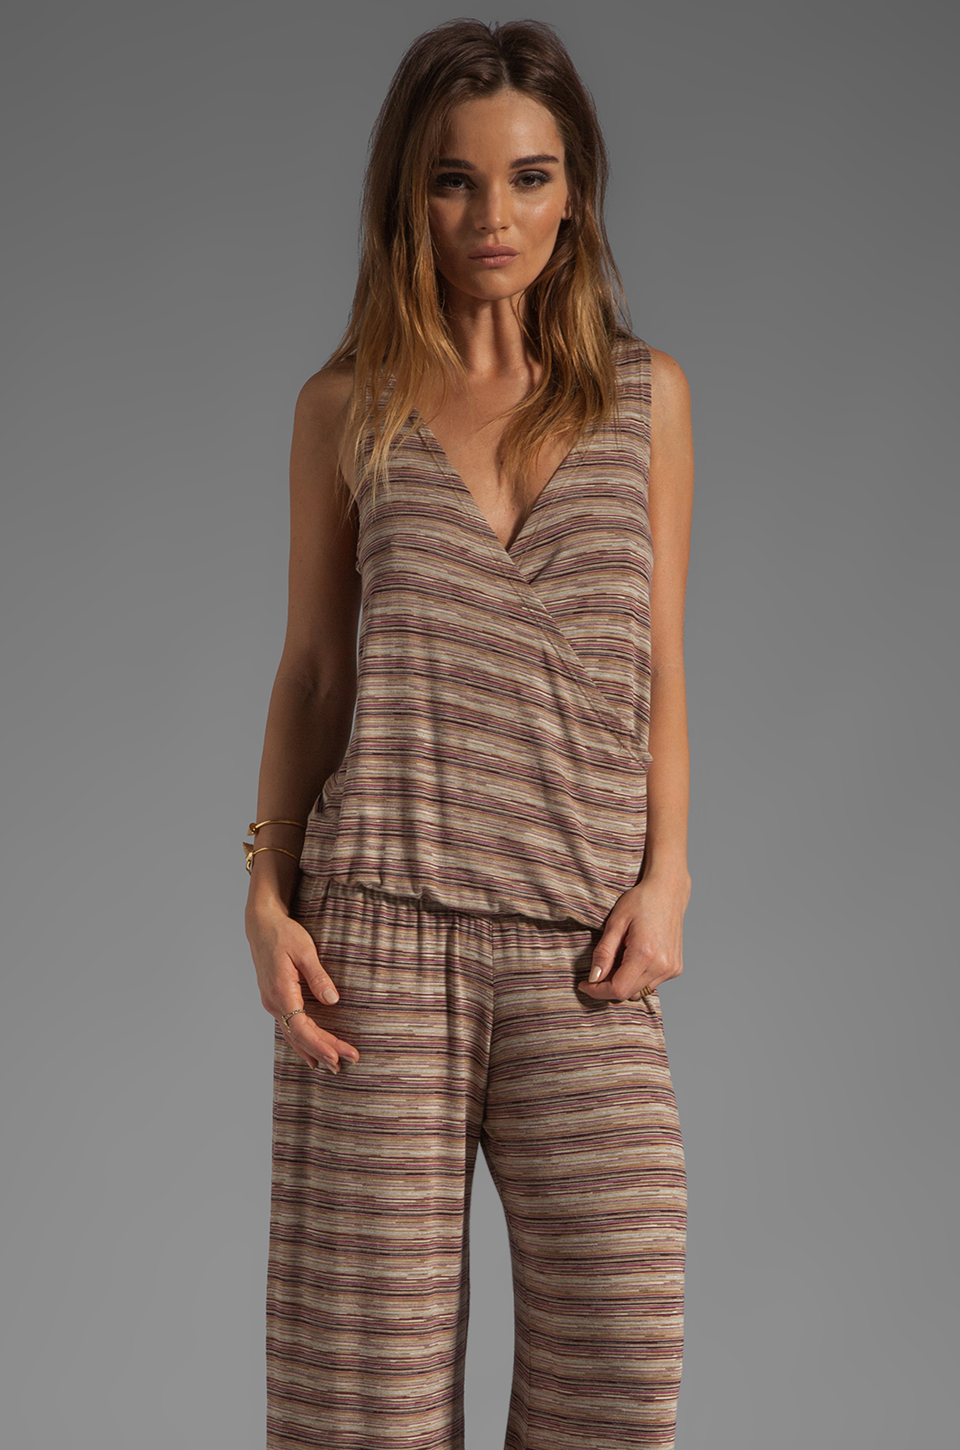 Michael Lauren Joe Long Romper in Berry Toffee